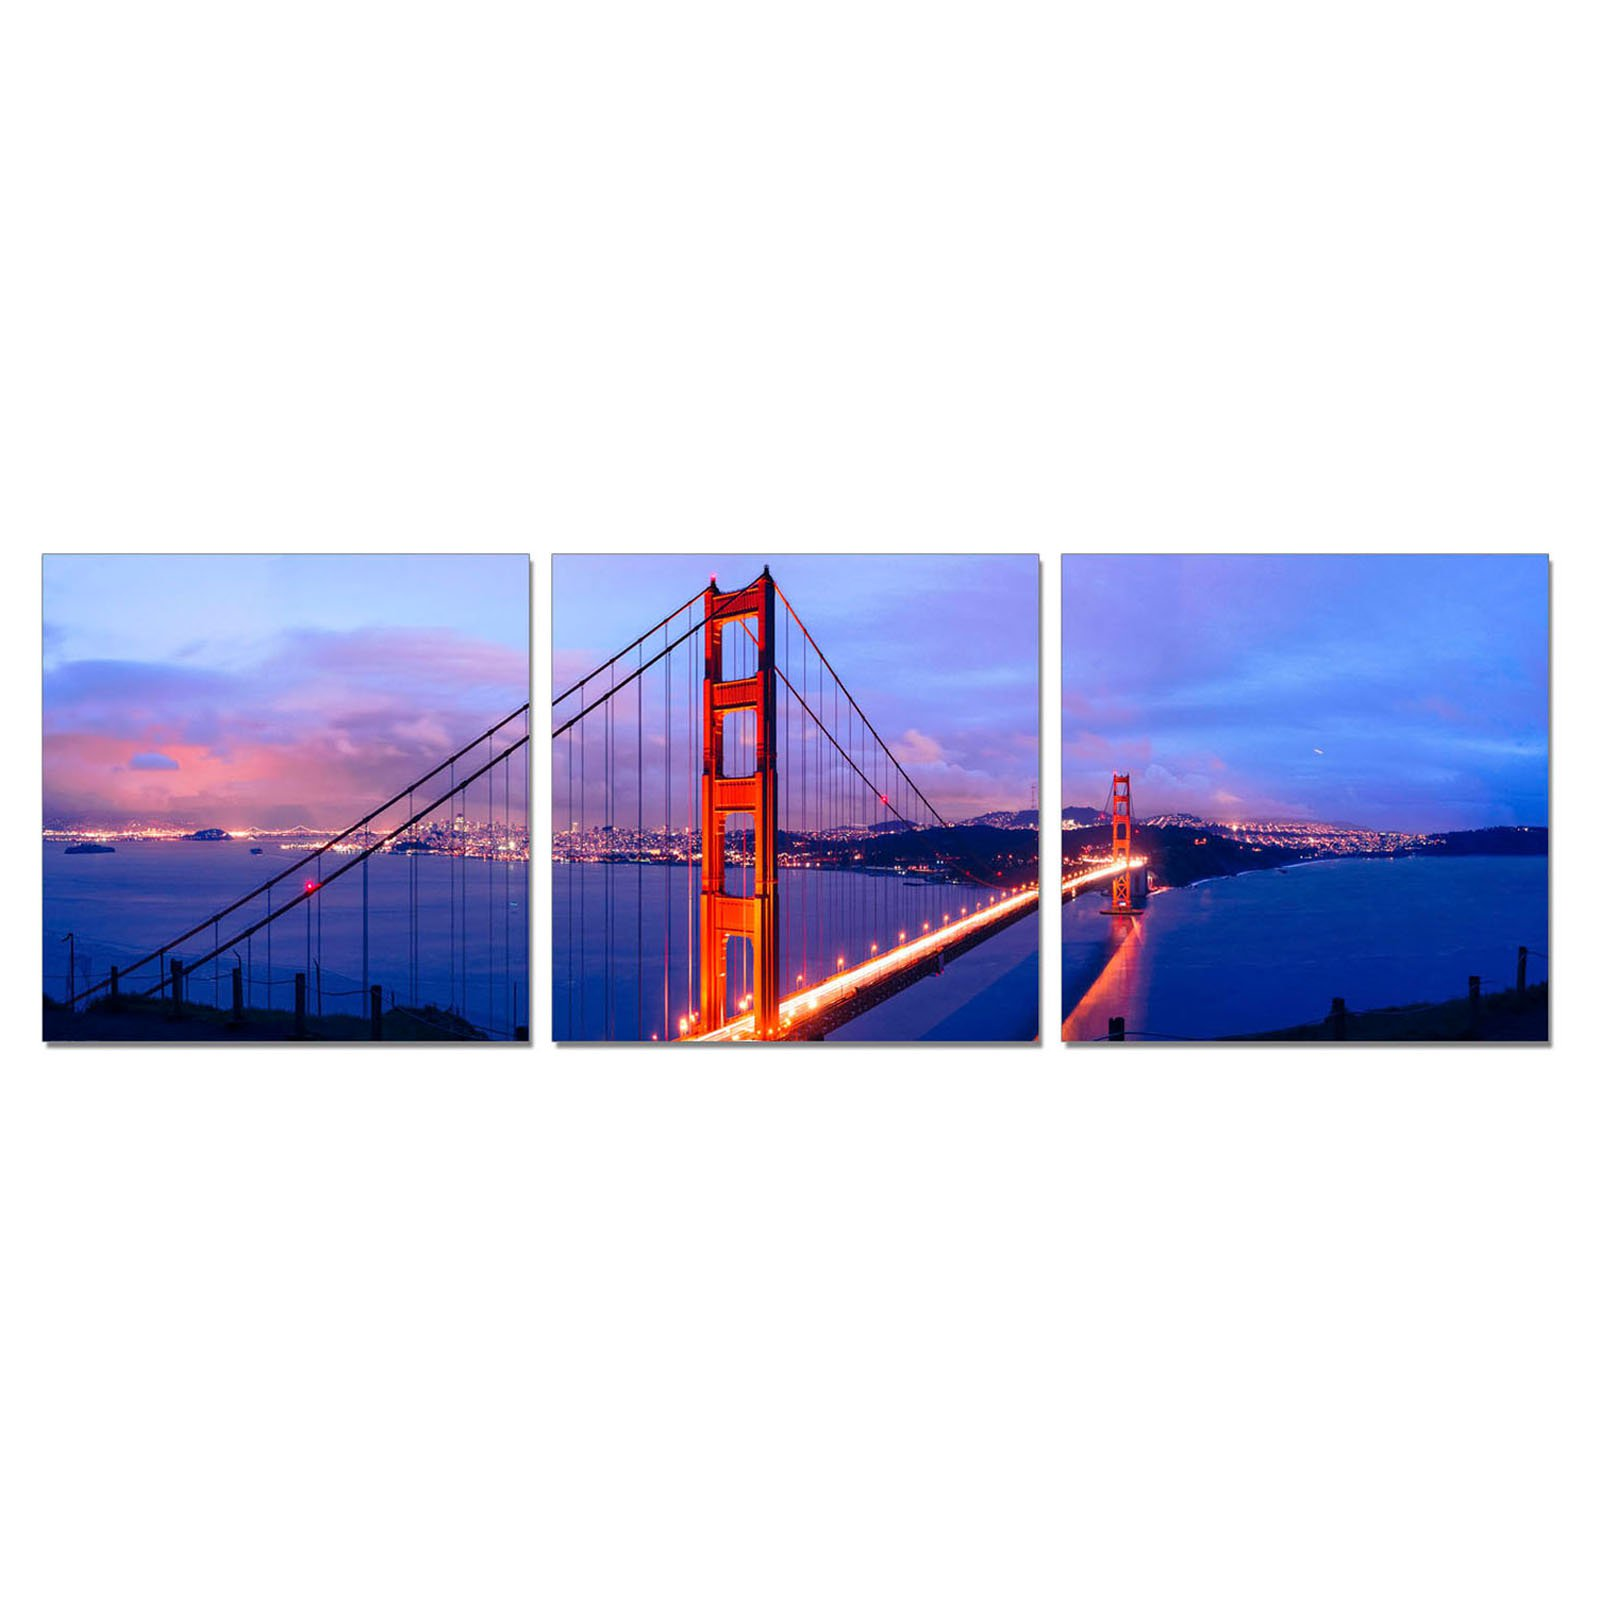 Furinno SeniA Golden Gate 3-Panel MDF Framed Photography Triptych Print, 48 x 16-in